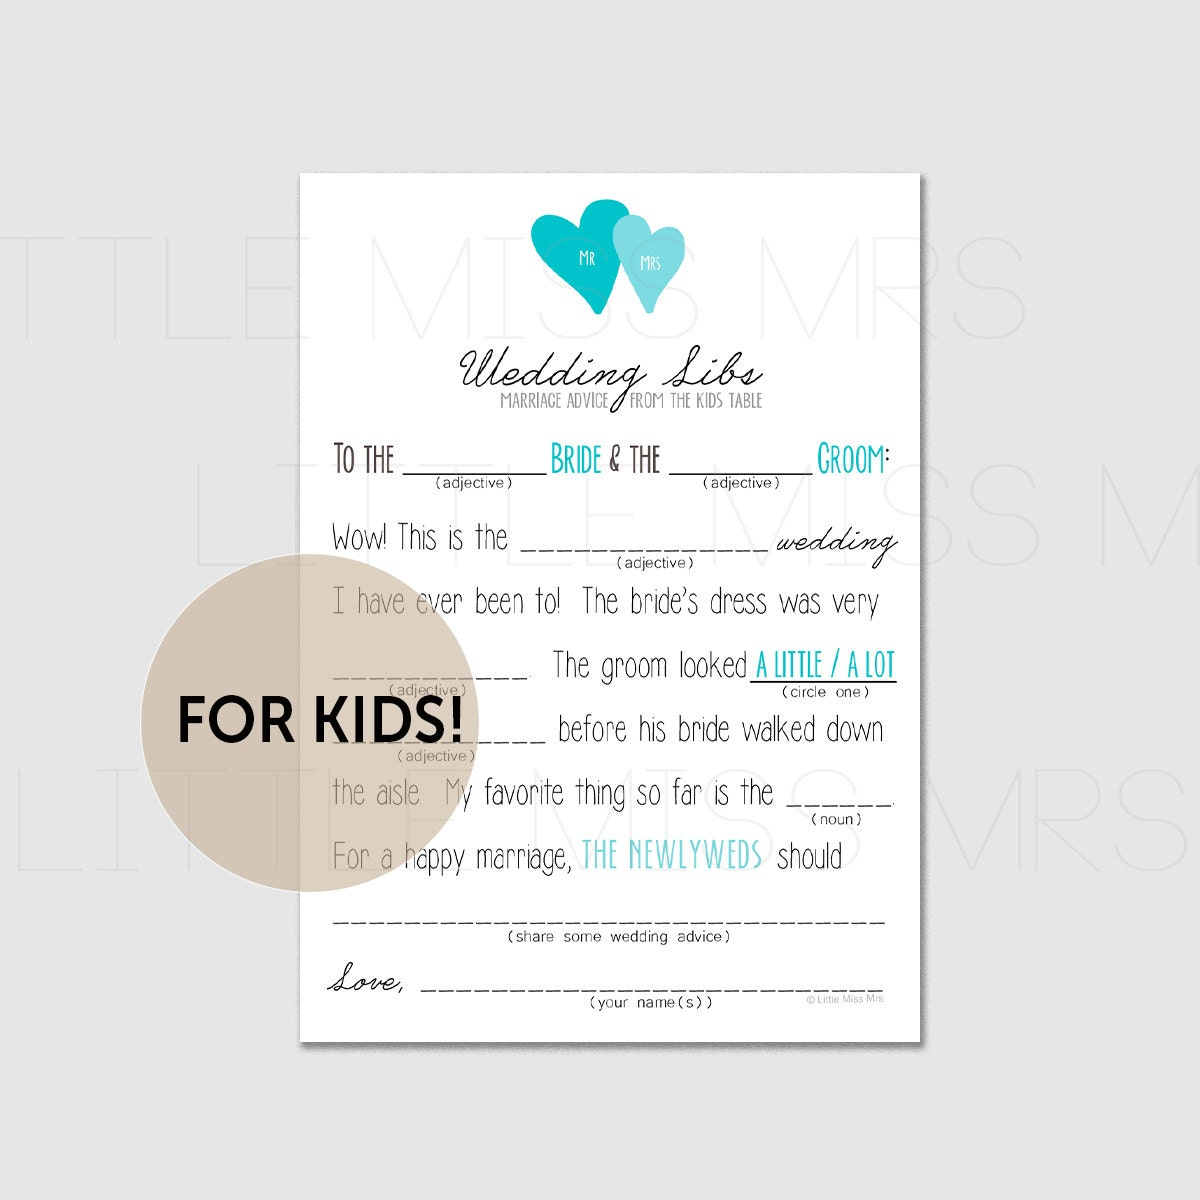 Marriage Advice From The Kids Table Printable Mad Lib Wedding